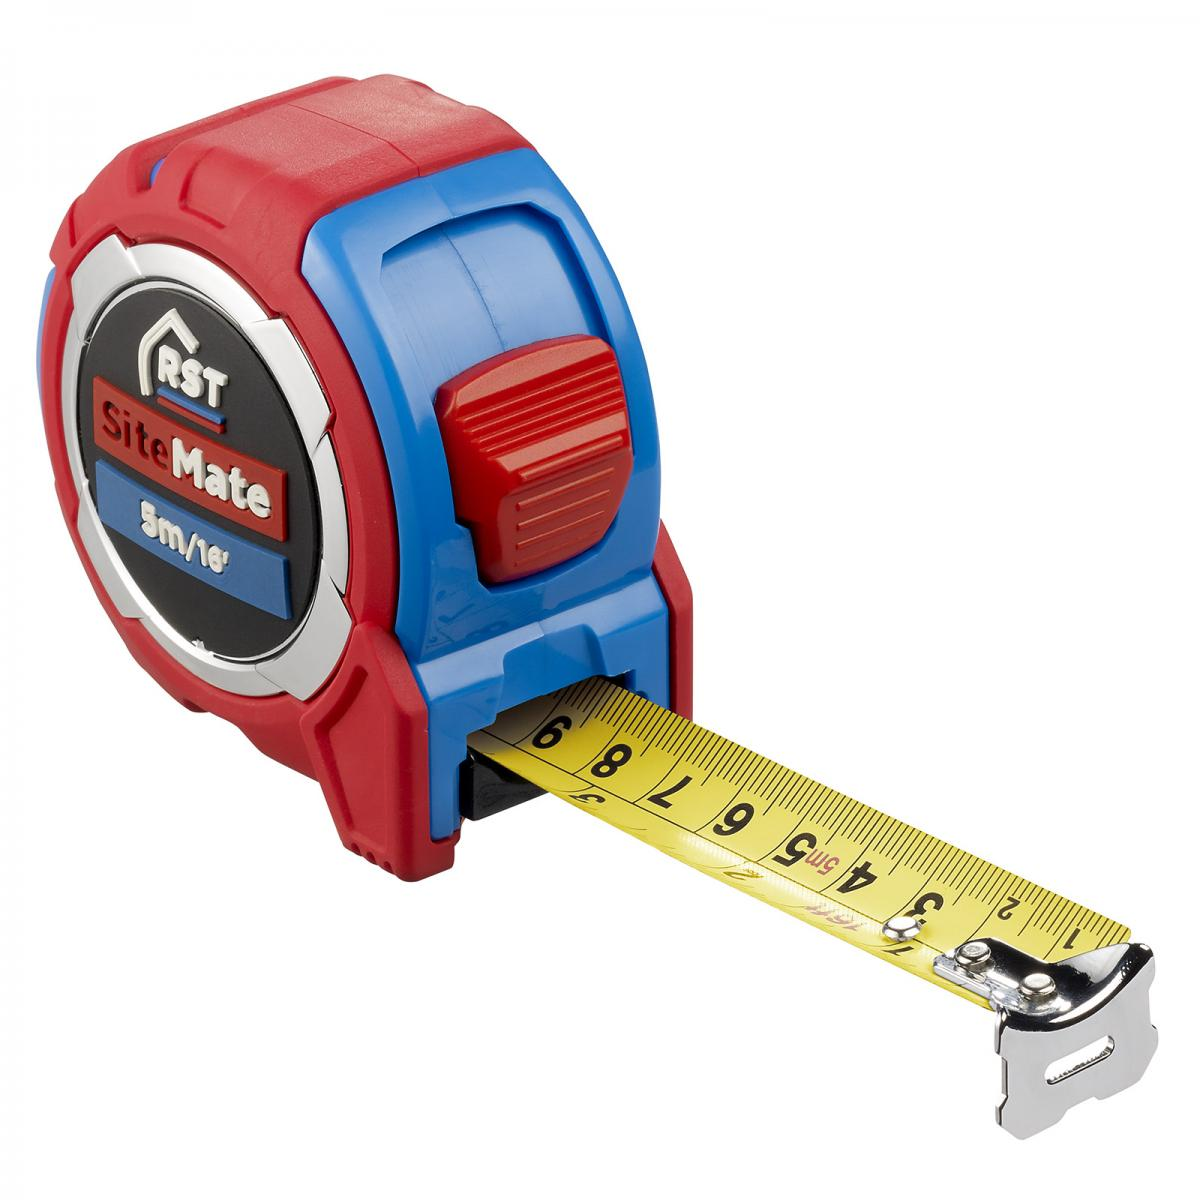 RST Site Mate 5m/16ft Tape Measure – Now Only £7.00